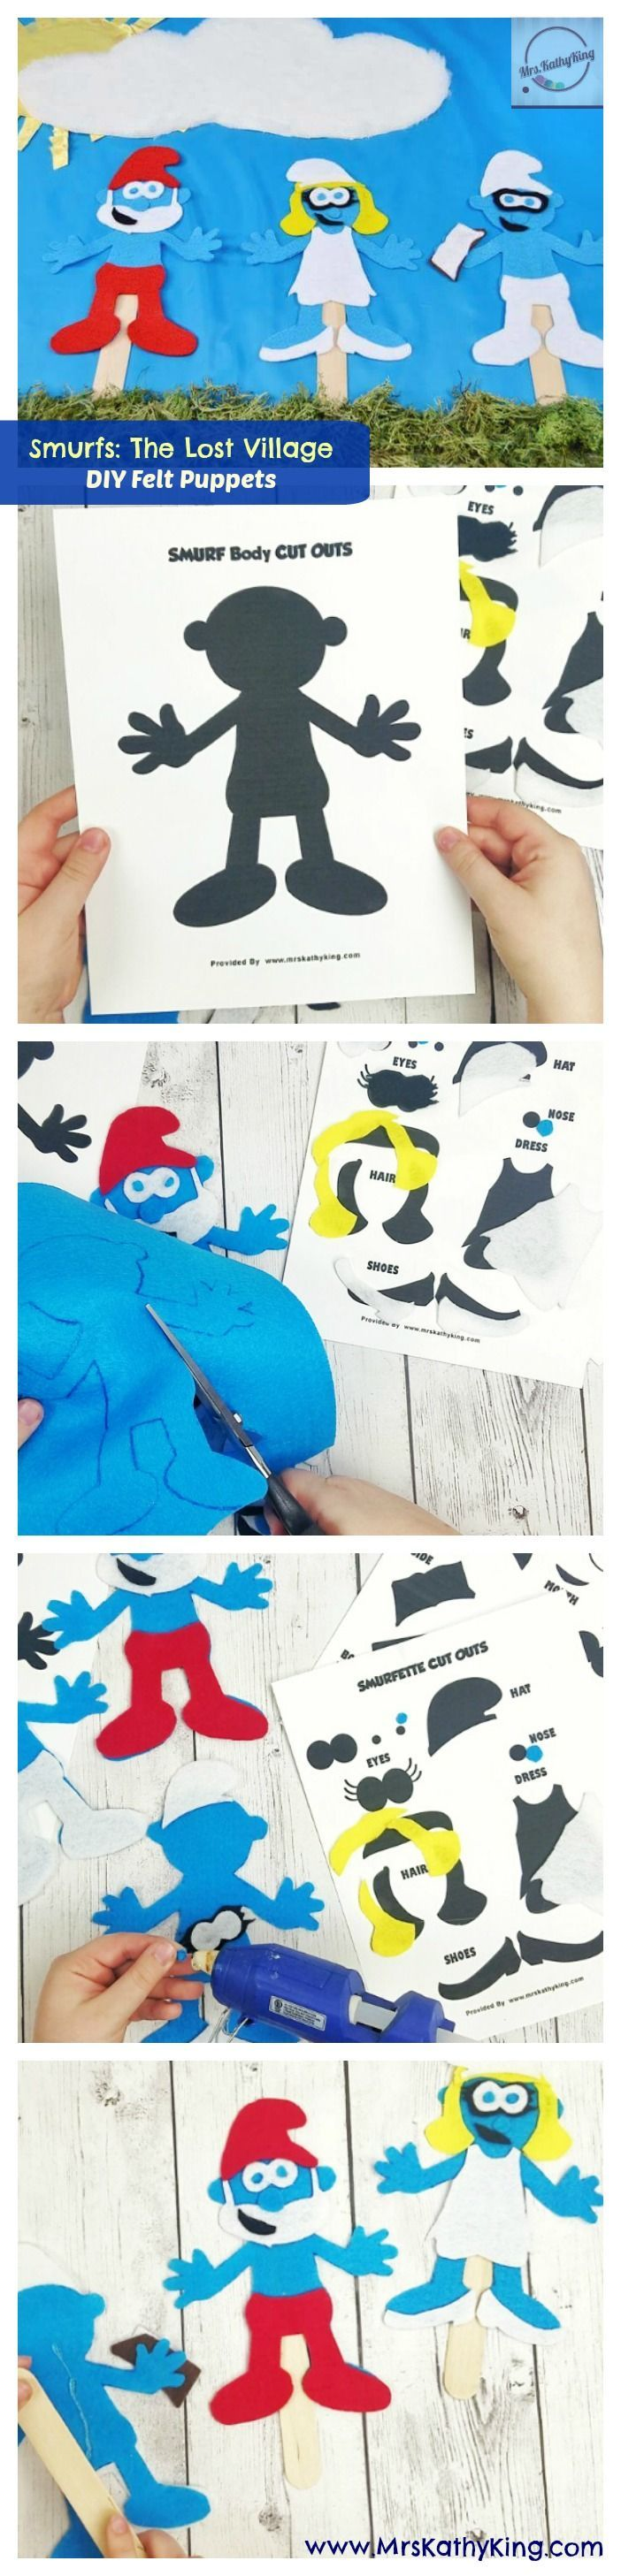 DIY felt Smurfs puppets | SMURFS: THE LOST VILLAGE hits theaters on April 7! Get in the mood for an opening day screening with this fun Smurfs kids craft by @MrsKathyKing!